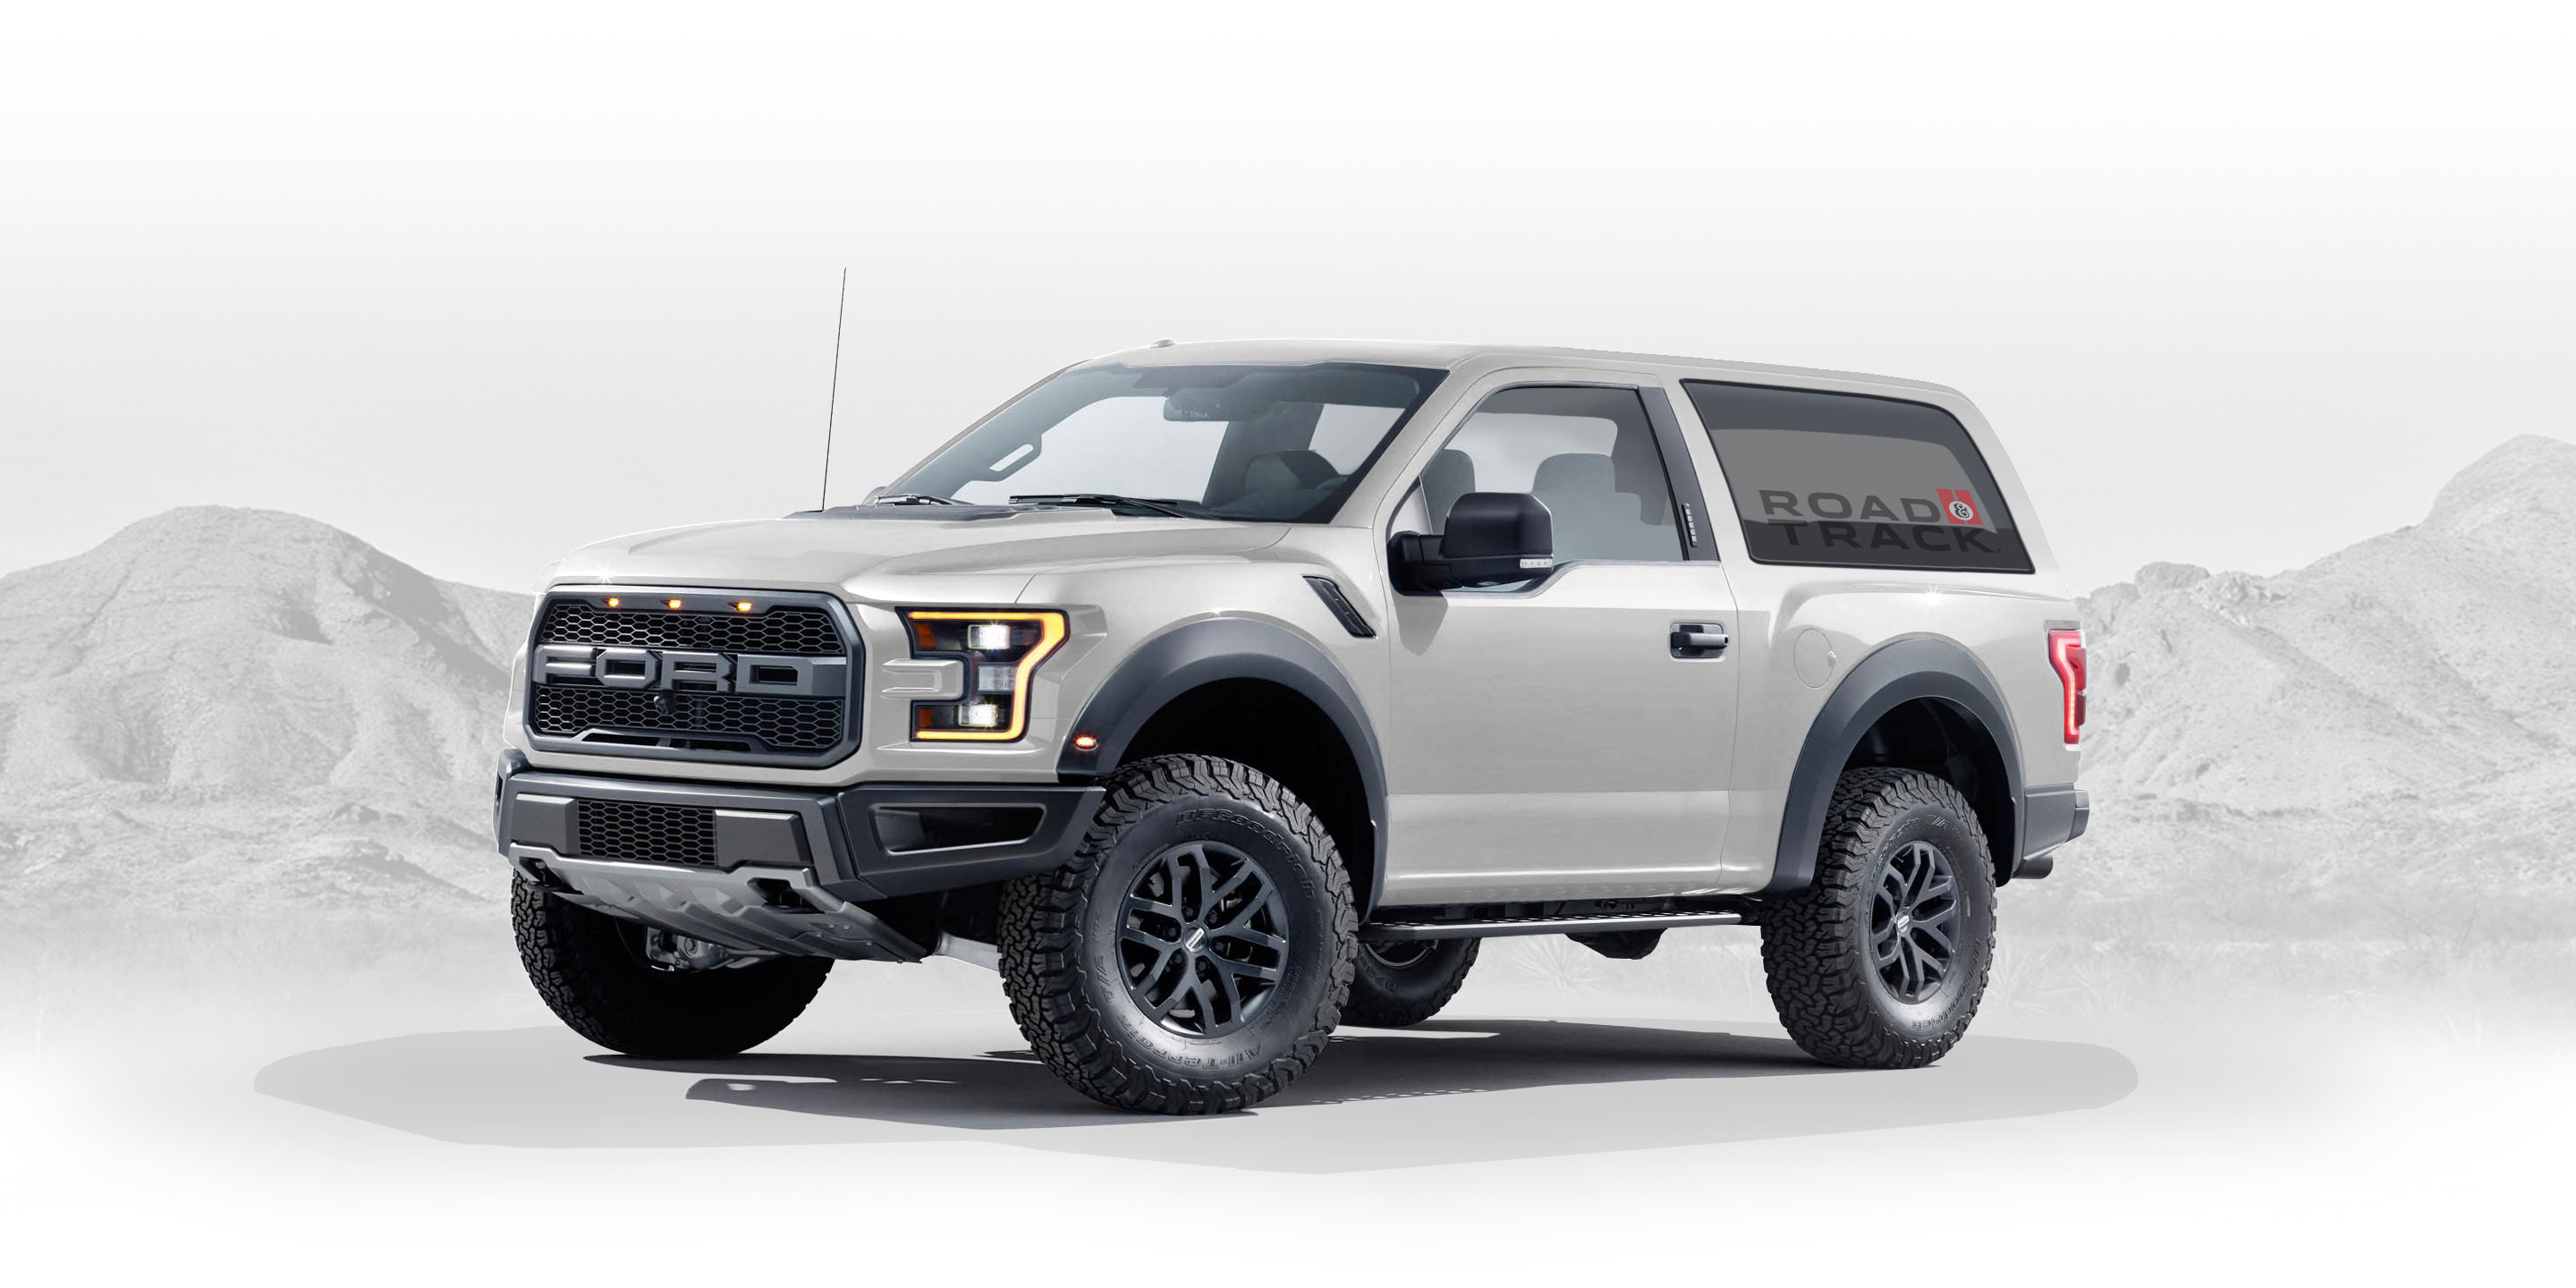 2020 Ford Bronco Designed By Fan - Graphic Artist Creates Ford Raptor ...